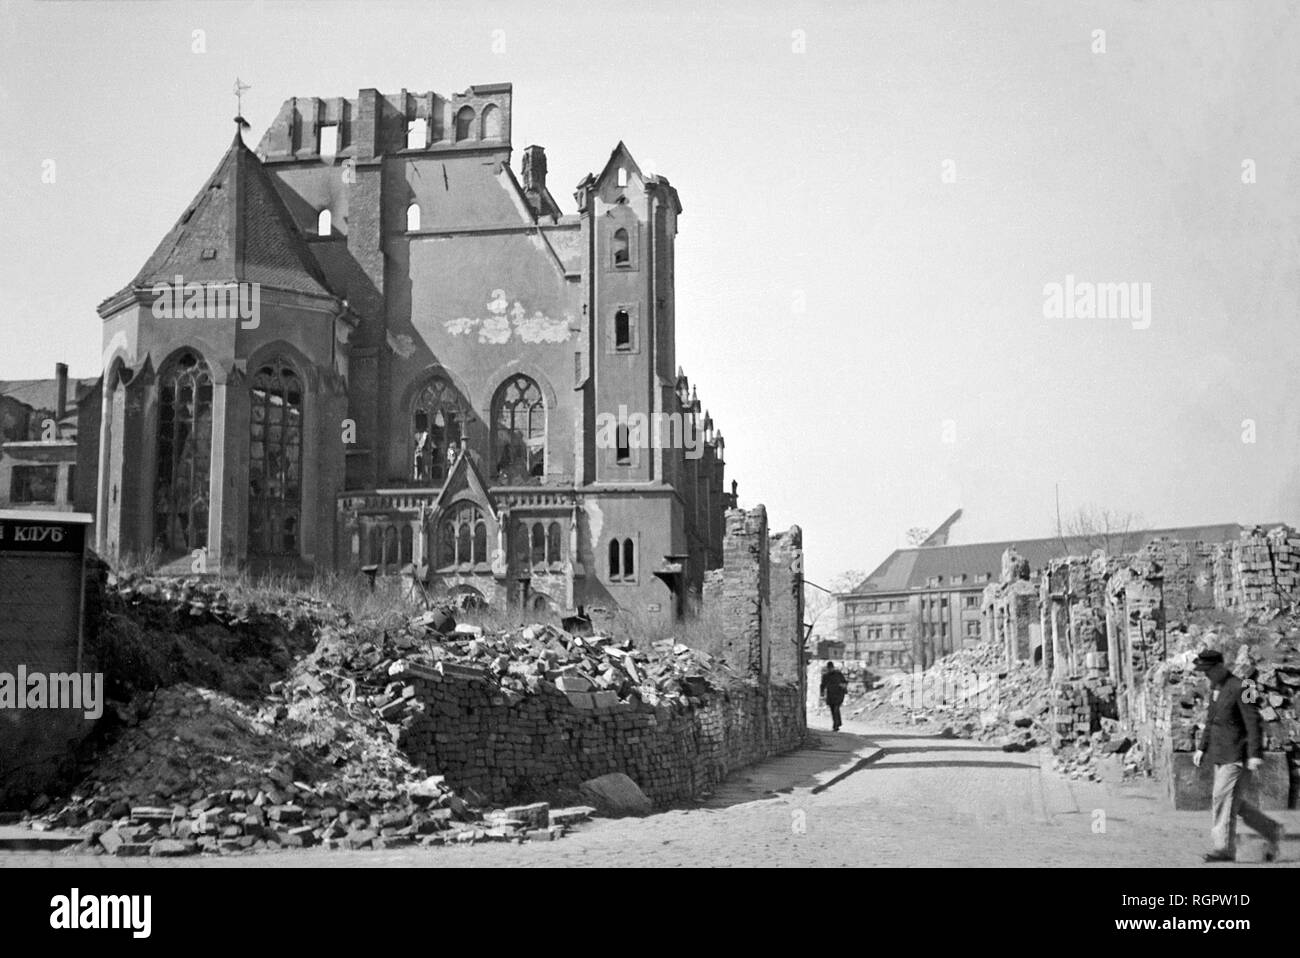 Ruin of the Matthäikirche, demolished 1949, photo from 1948, in the background the main fire station, Große Fleischergasse - Stock Image